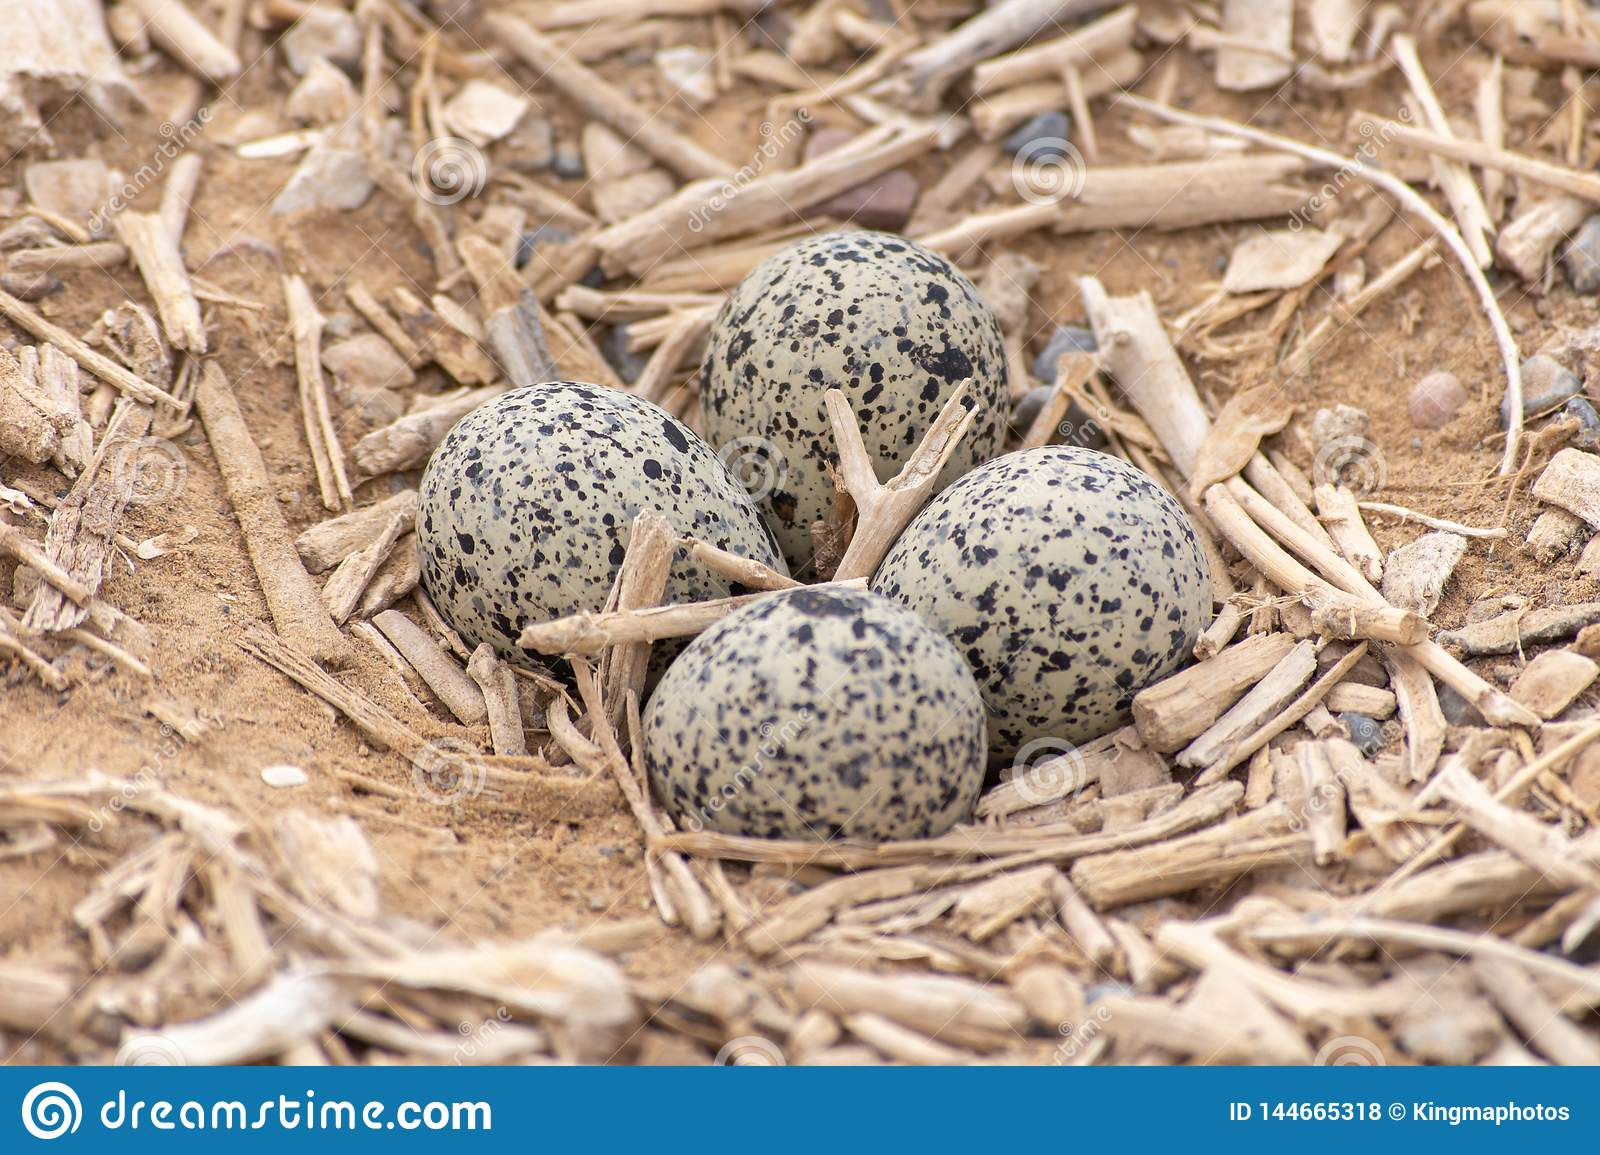 Red Wattled Lapwing Vanellus indicus nest of four eggs in the United Arab Emirates